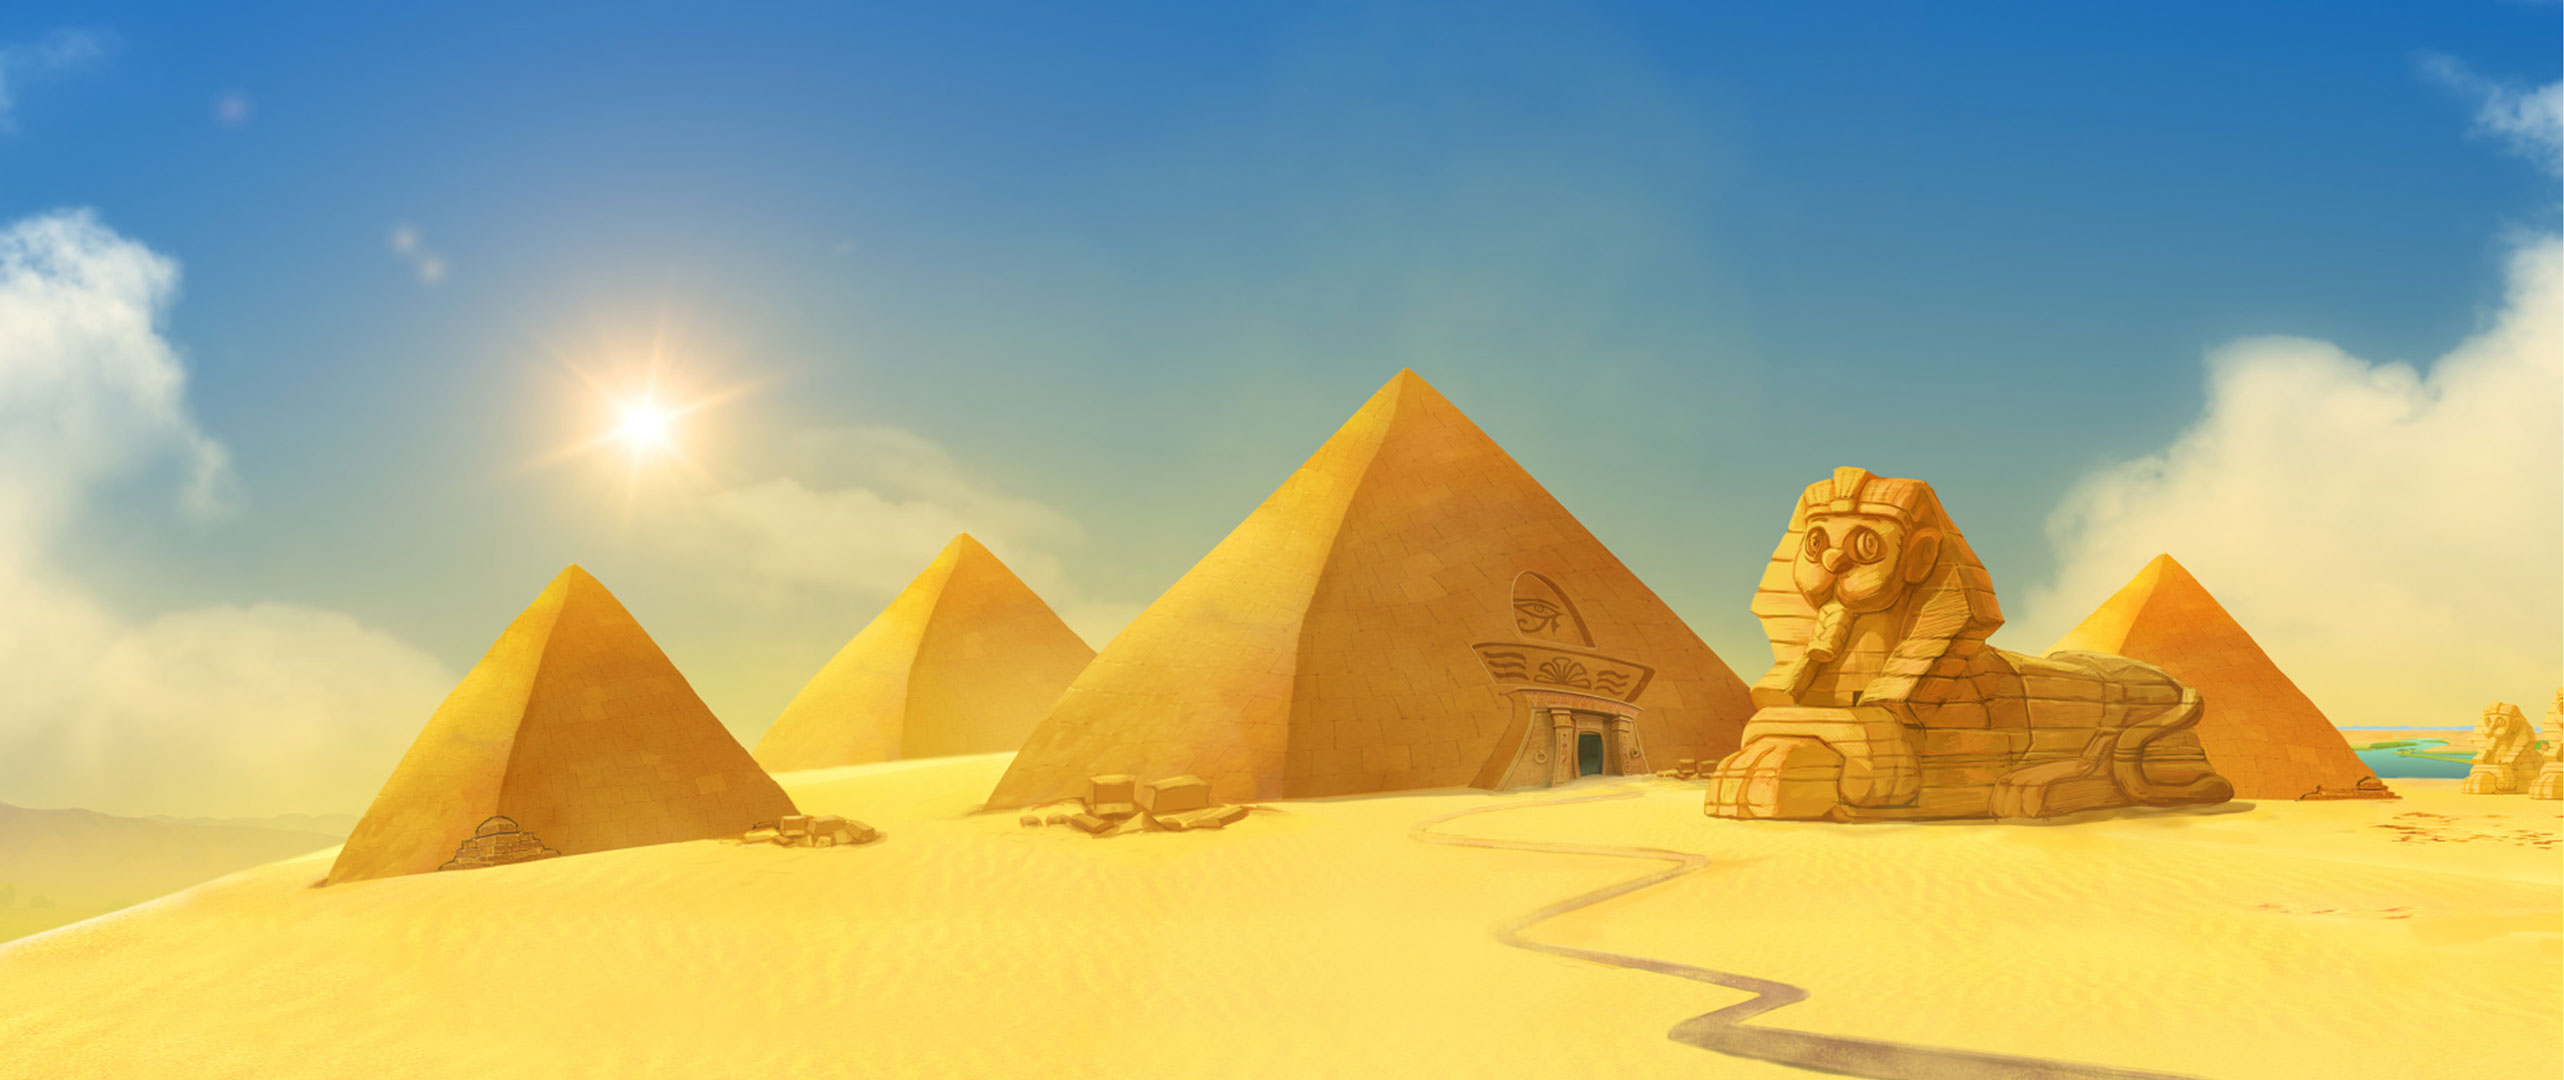 matte painting  how to build a pyramid